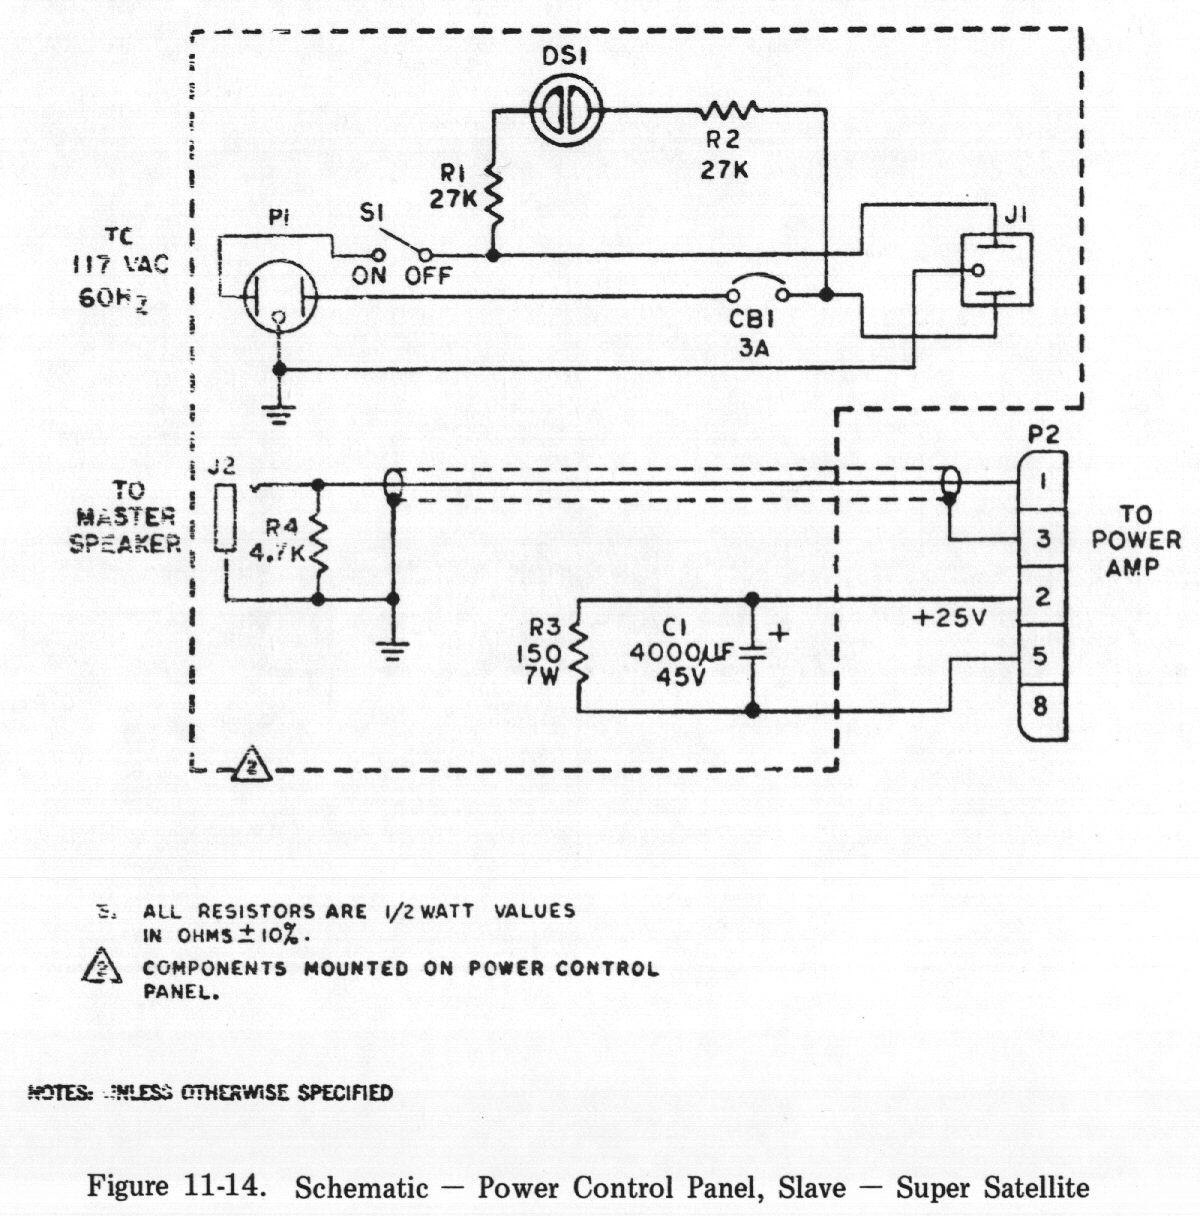 Chapter 11 Diagrams Schematics And Pictorials Amp Schematic Power Control Panel Slave Super Satellite